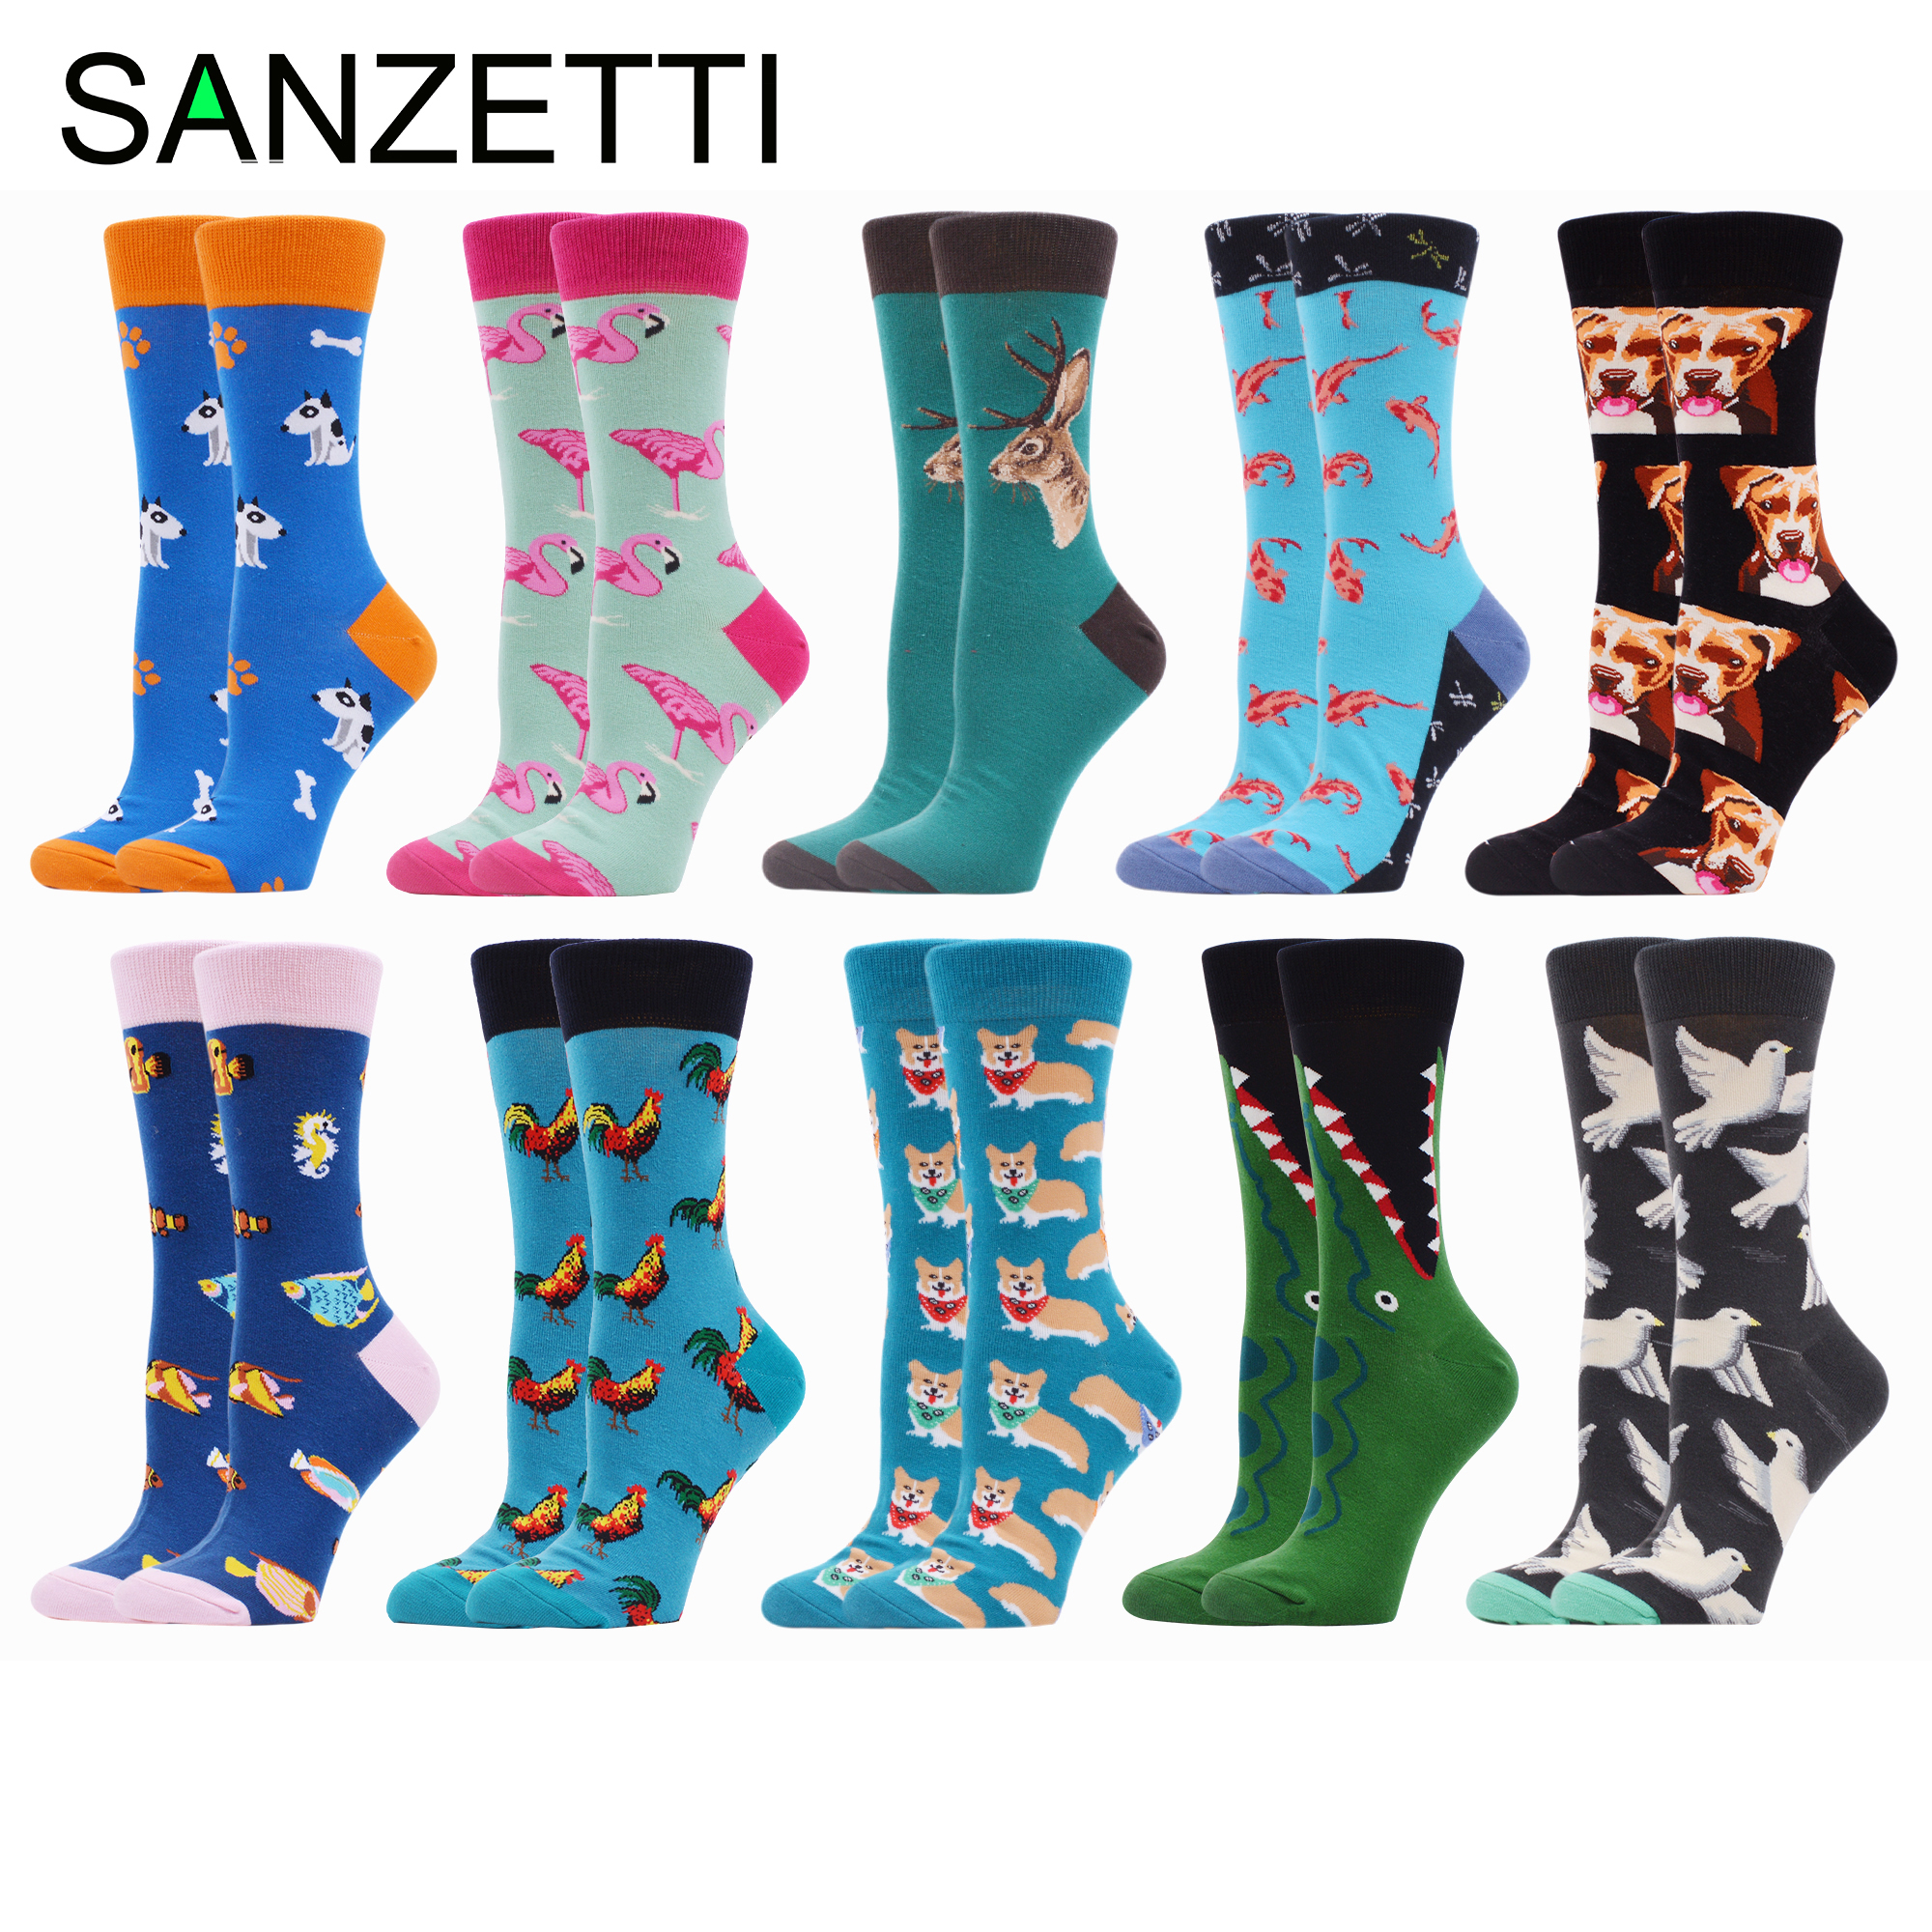 SANZETTI 10 Pairs Women Combed Cotton Socks Crocodile Colorful Happy Animal Pattern Novelty Wedding Bright Gifts Dress Socks